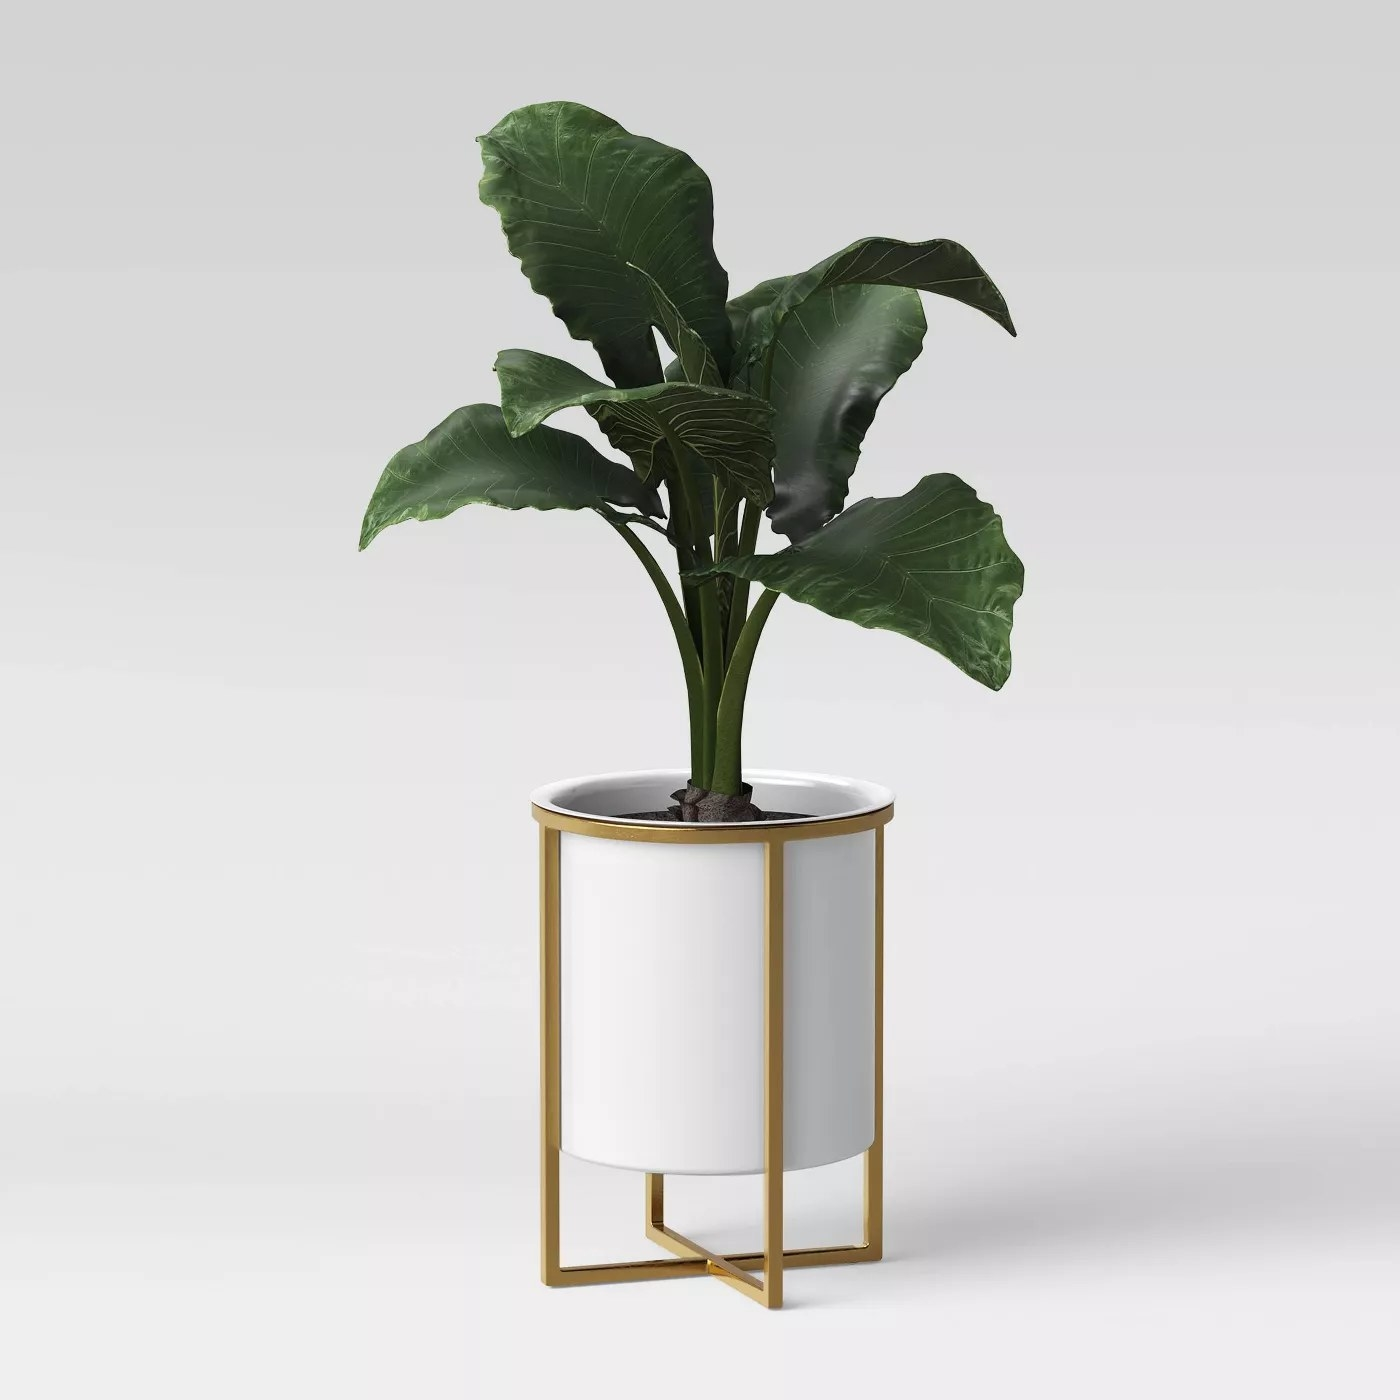 The white circular planter with a brass frame and a plant inside